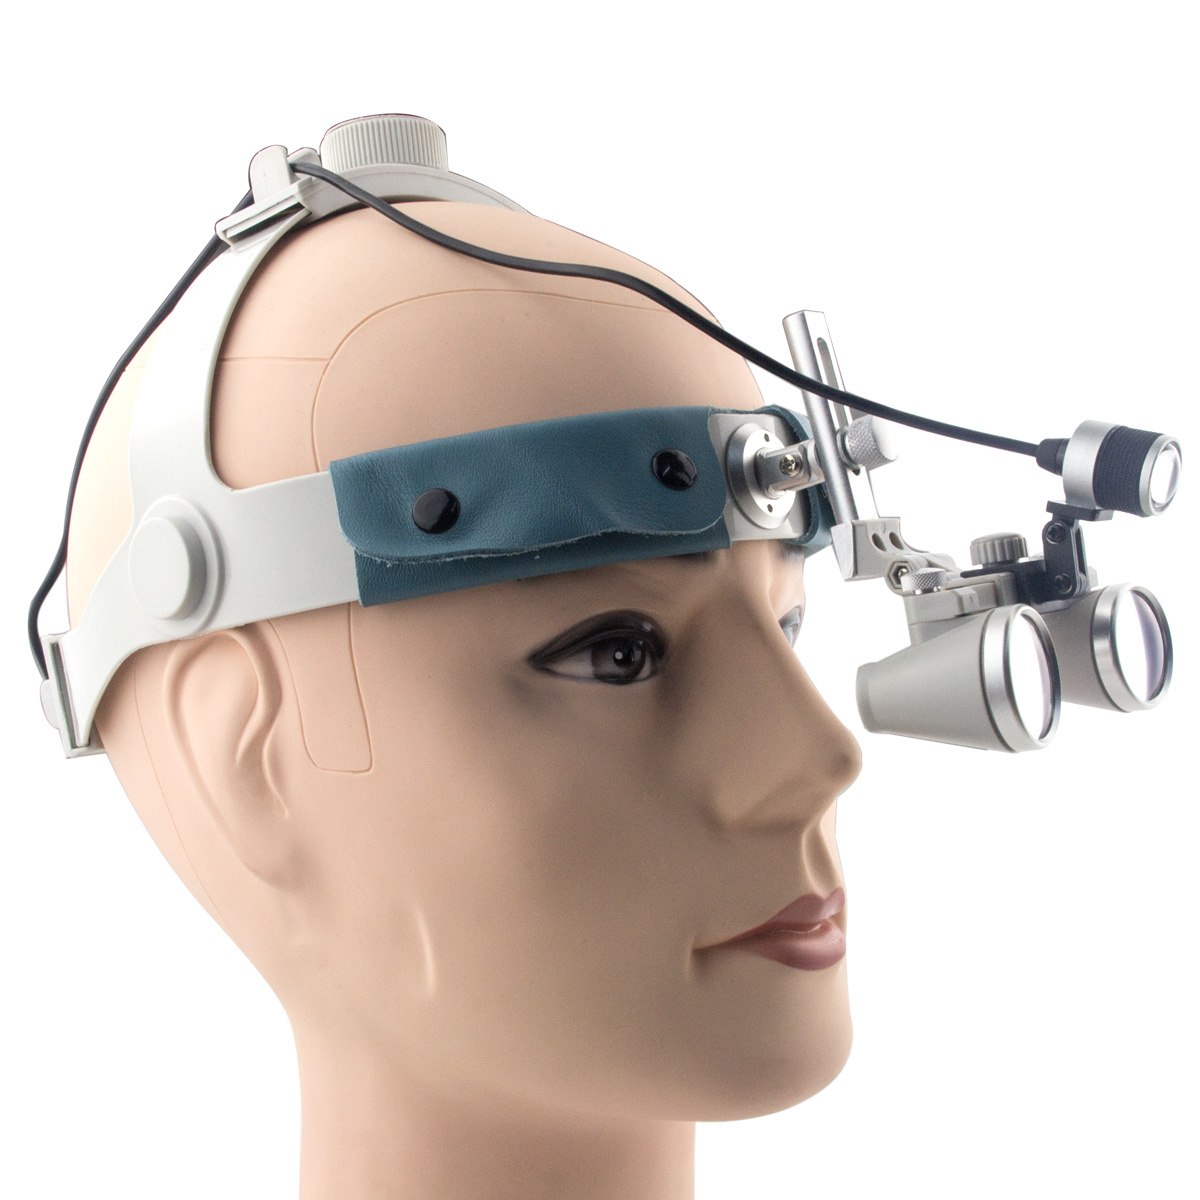 Spark 3.5x Magnification Professional Loupes with Comfortable Headband and Mounted LED Head Light Adjustable Pupil Distance  spark 2 5x magnification dentist surgical medical binocular dental loupes with comfortable headband and mounted led head light